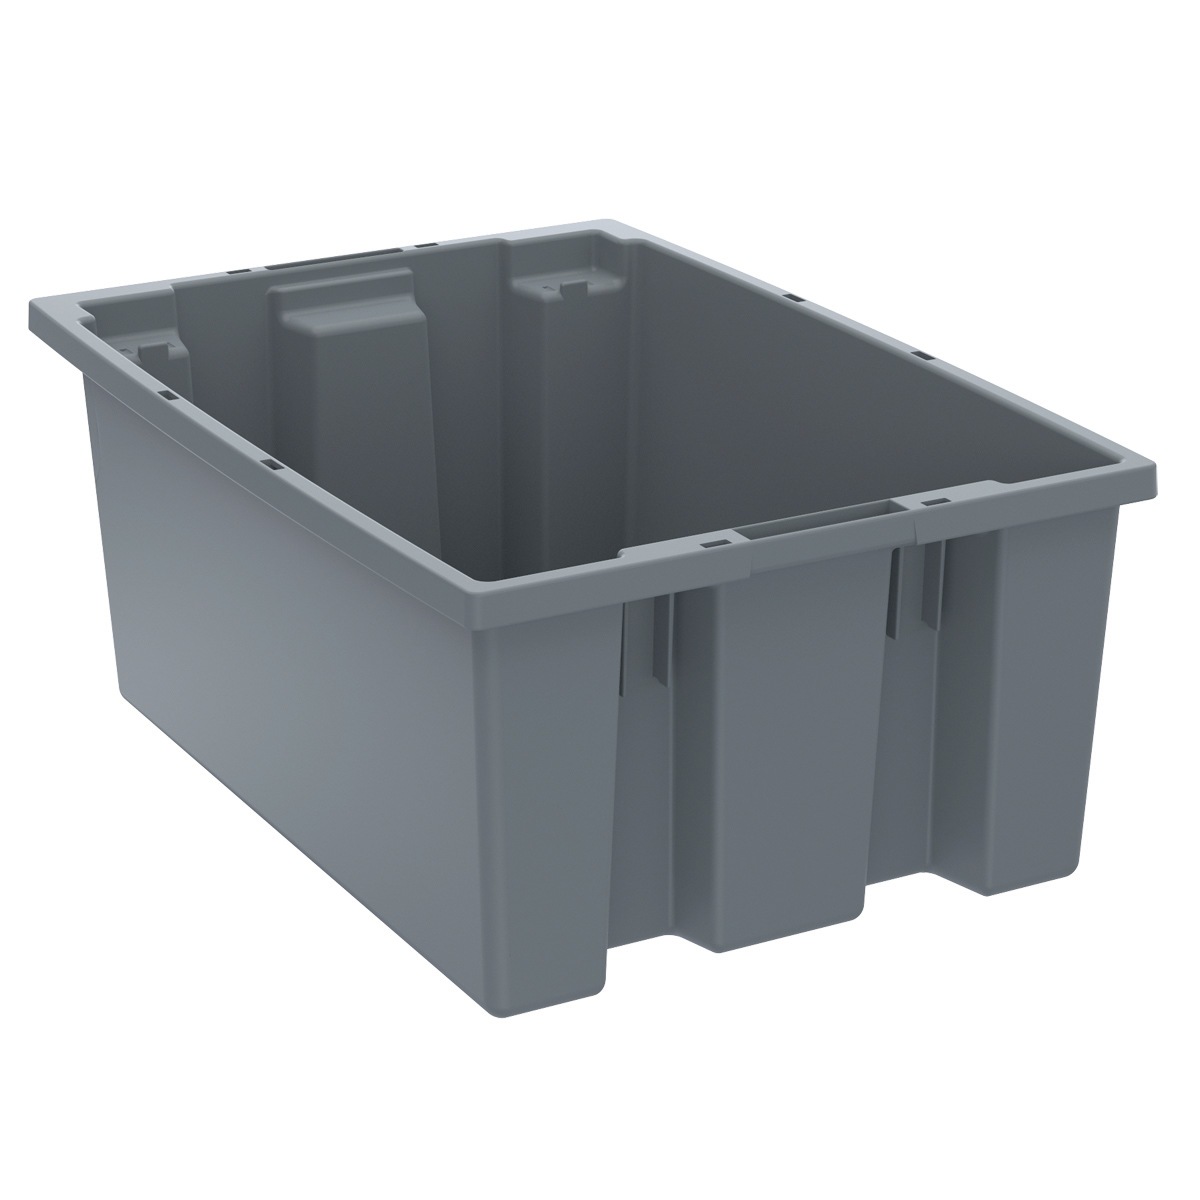 Nest & Stack Tote 19-1/2 x 13-1/2 x 8, Gray (35200GREY).  This item sold in carton quantities of 6.